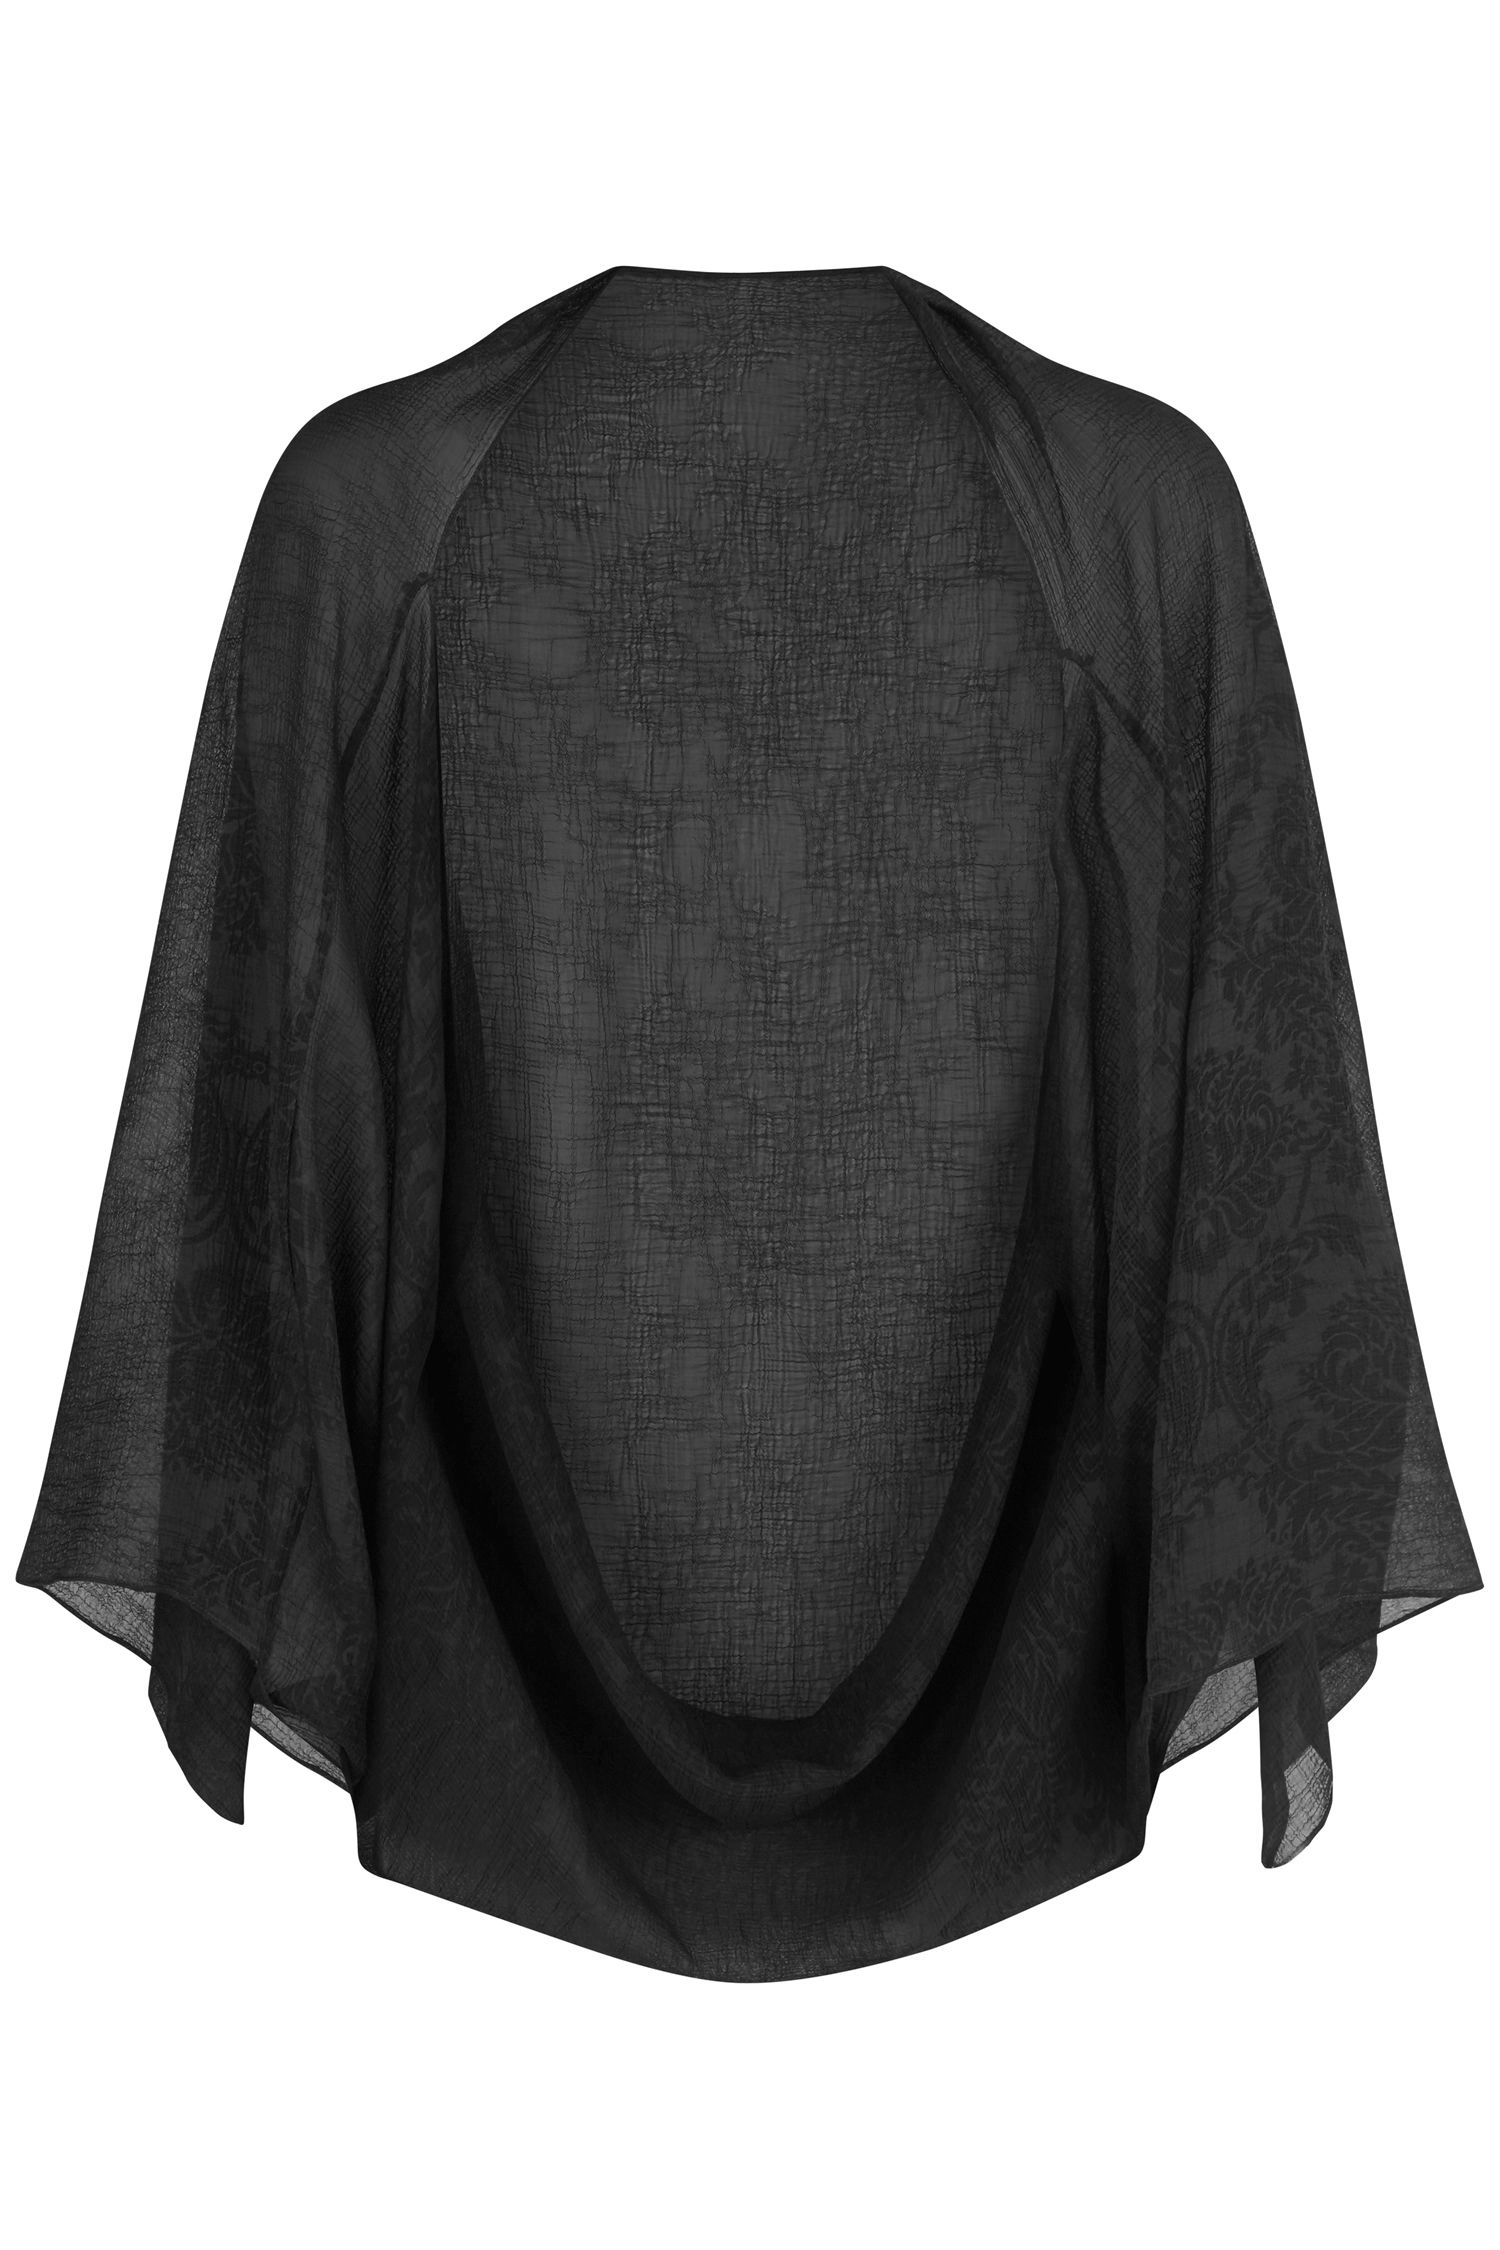 Damsel in a Dress Embossed Cape, Grey